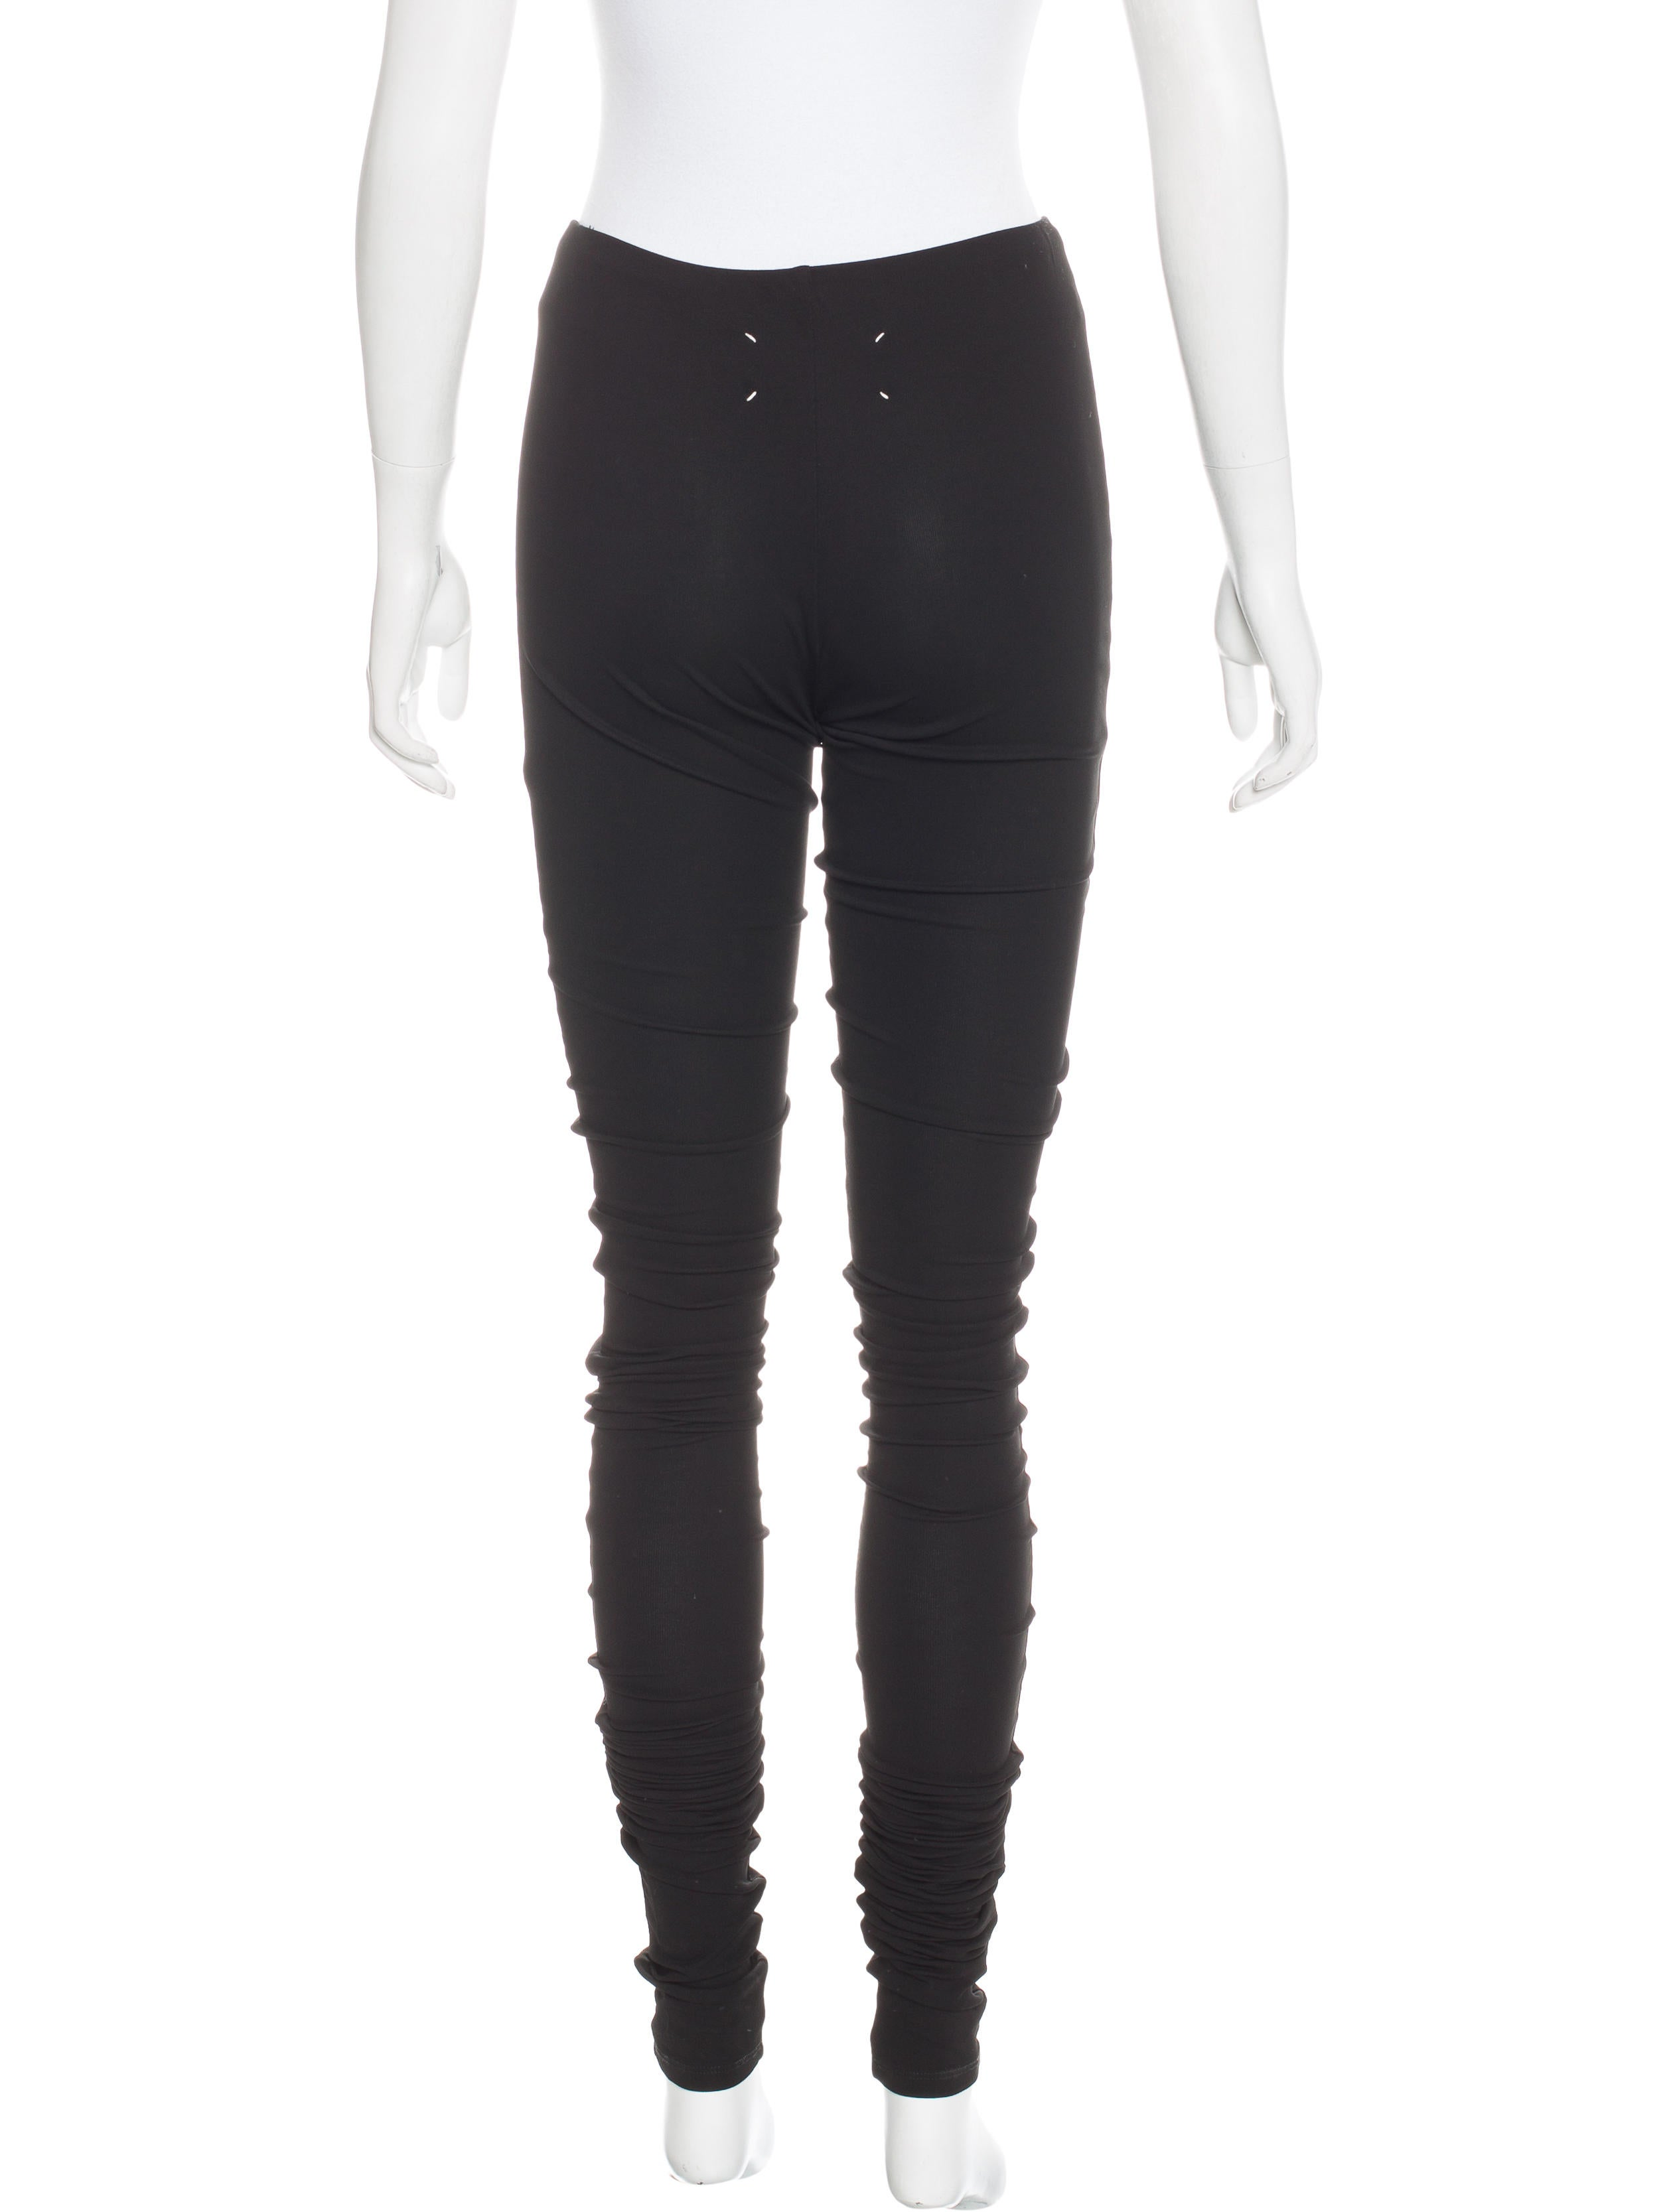 Maison margiela mid rise exaggerated leggings clothing for 10 moulmein rise la maison